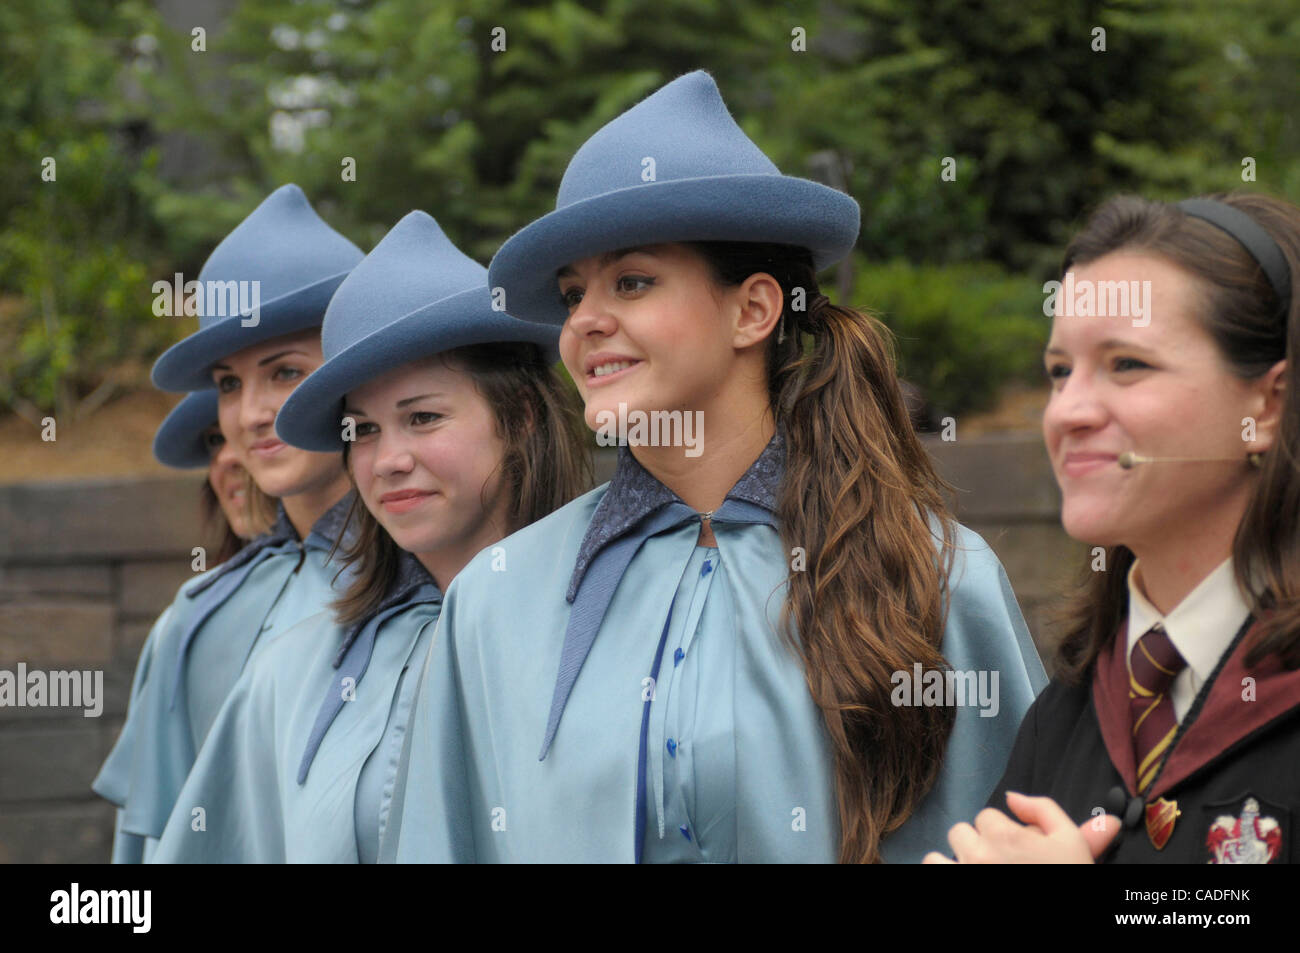 Wizarding Academy High Resolution Stock Photography And Images Alamy See more ideas about vaatteet, muoti, inspiroivat asut. alamy